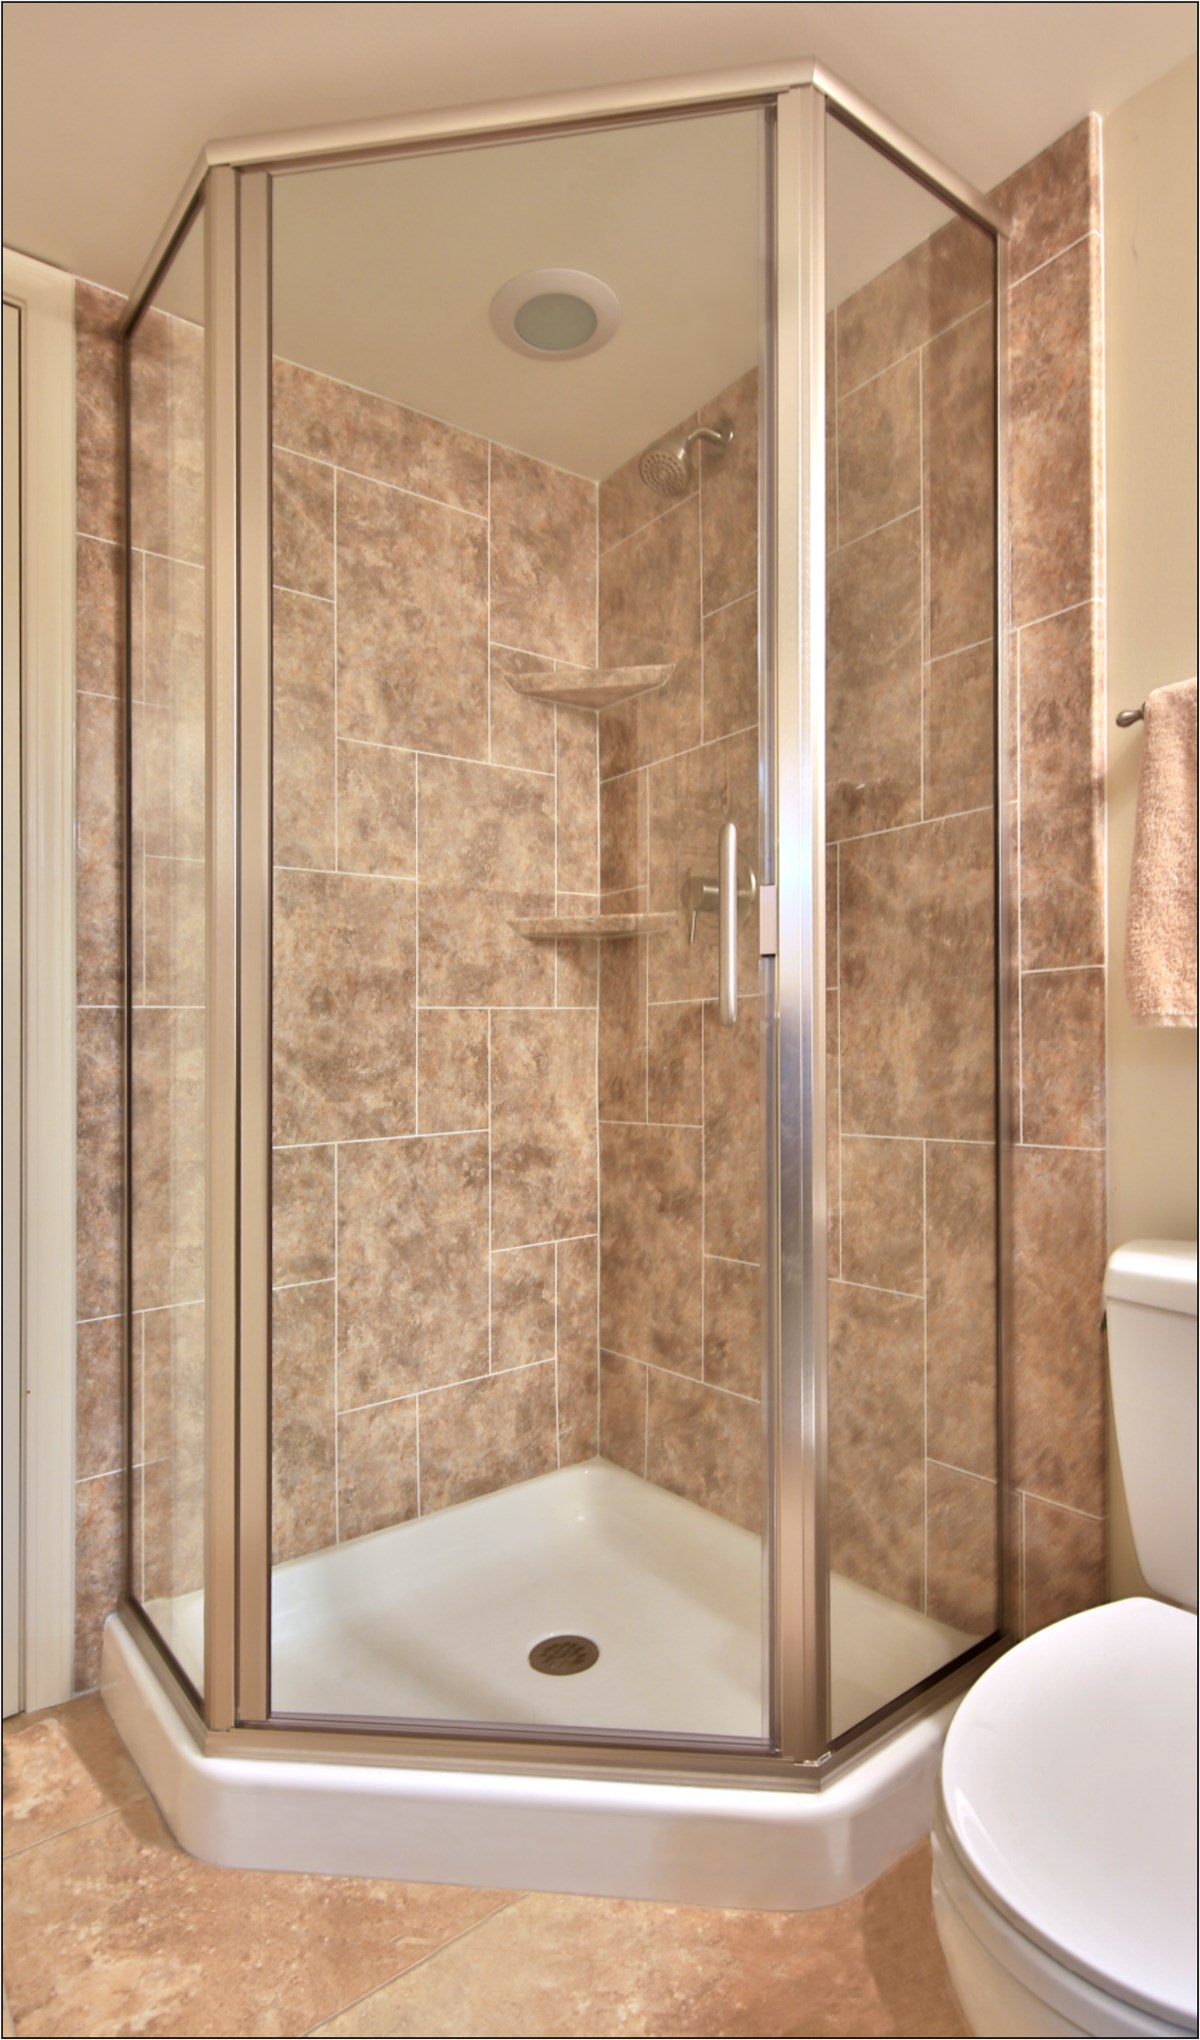 Bathroom Remodeling Texas Bathroom Remodeler Statewide Remodeling